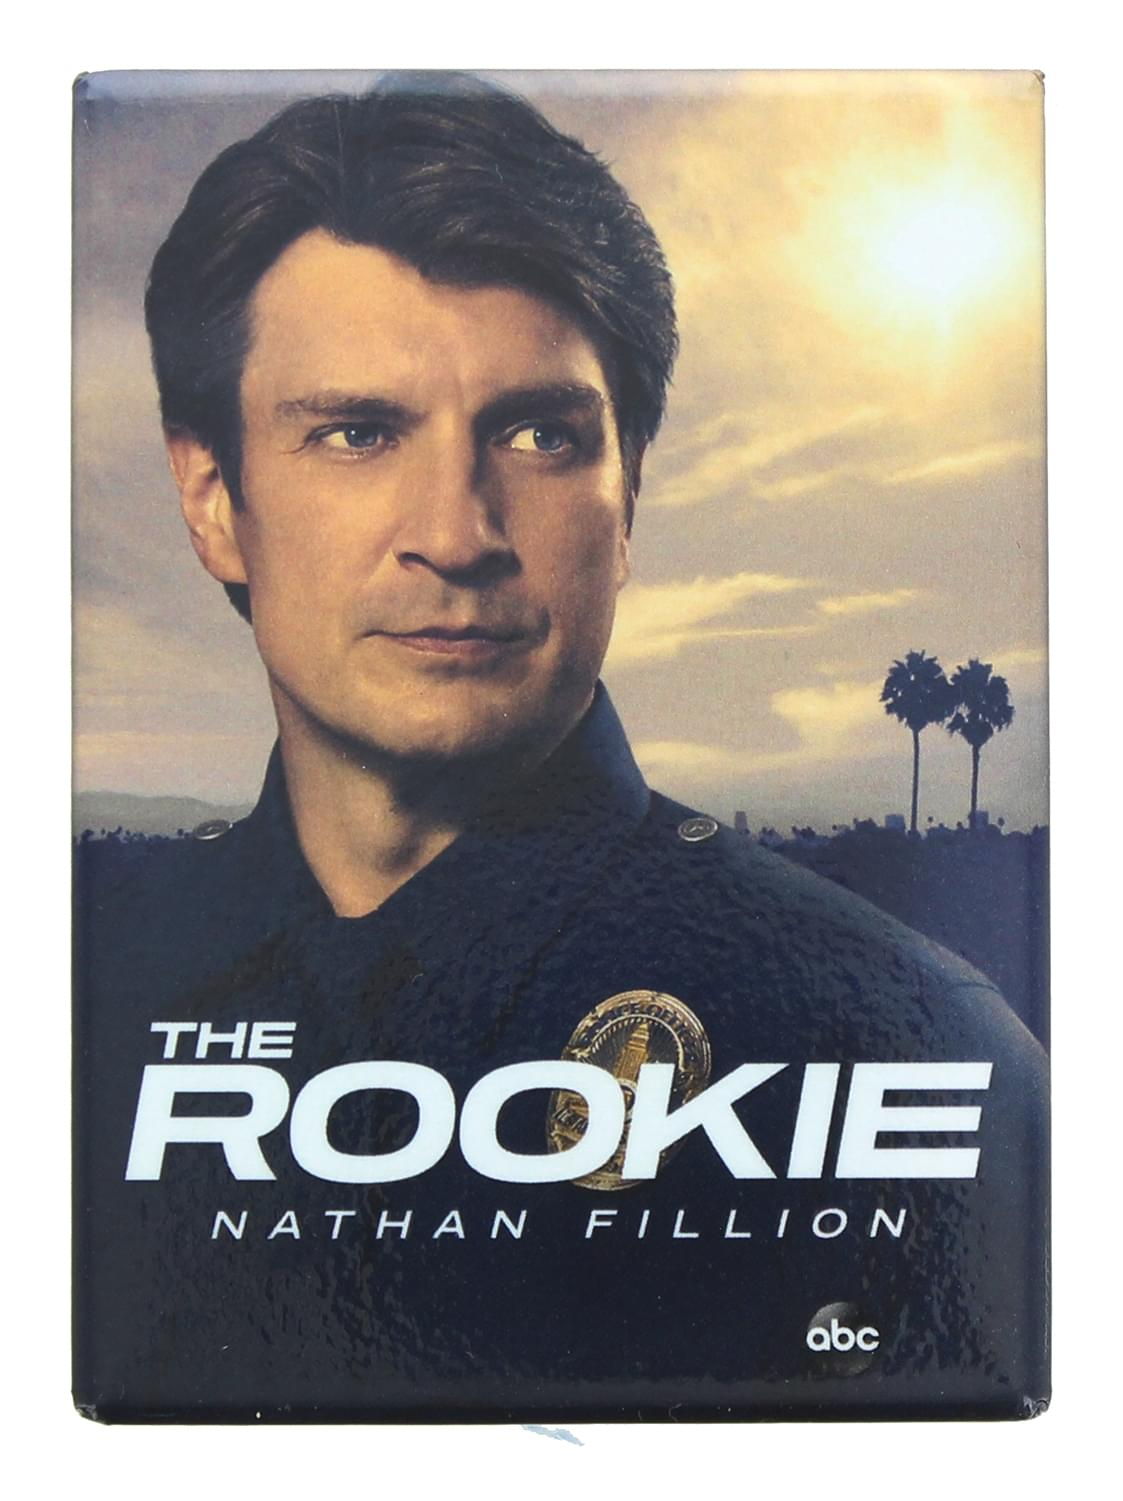 The Rookie Poster 2.5 x 3.5 Inch Magnet